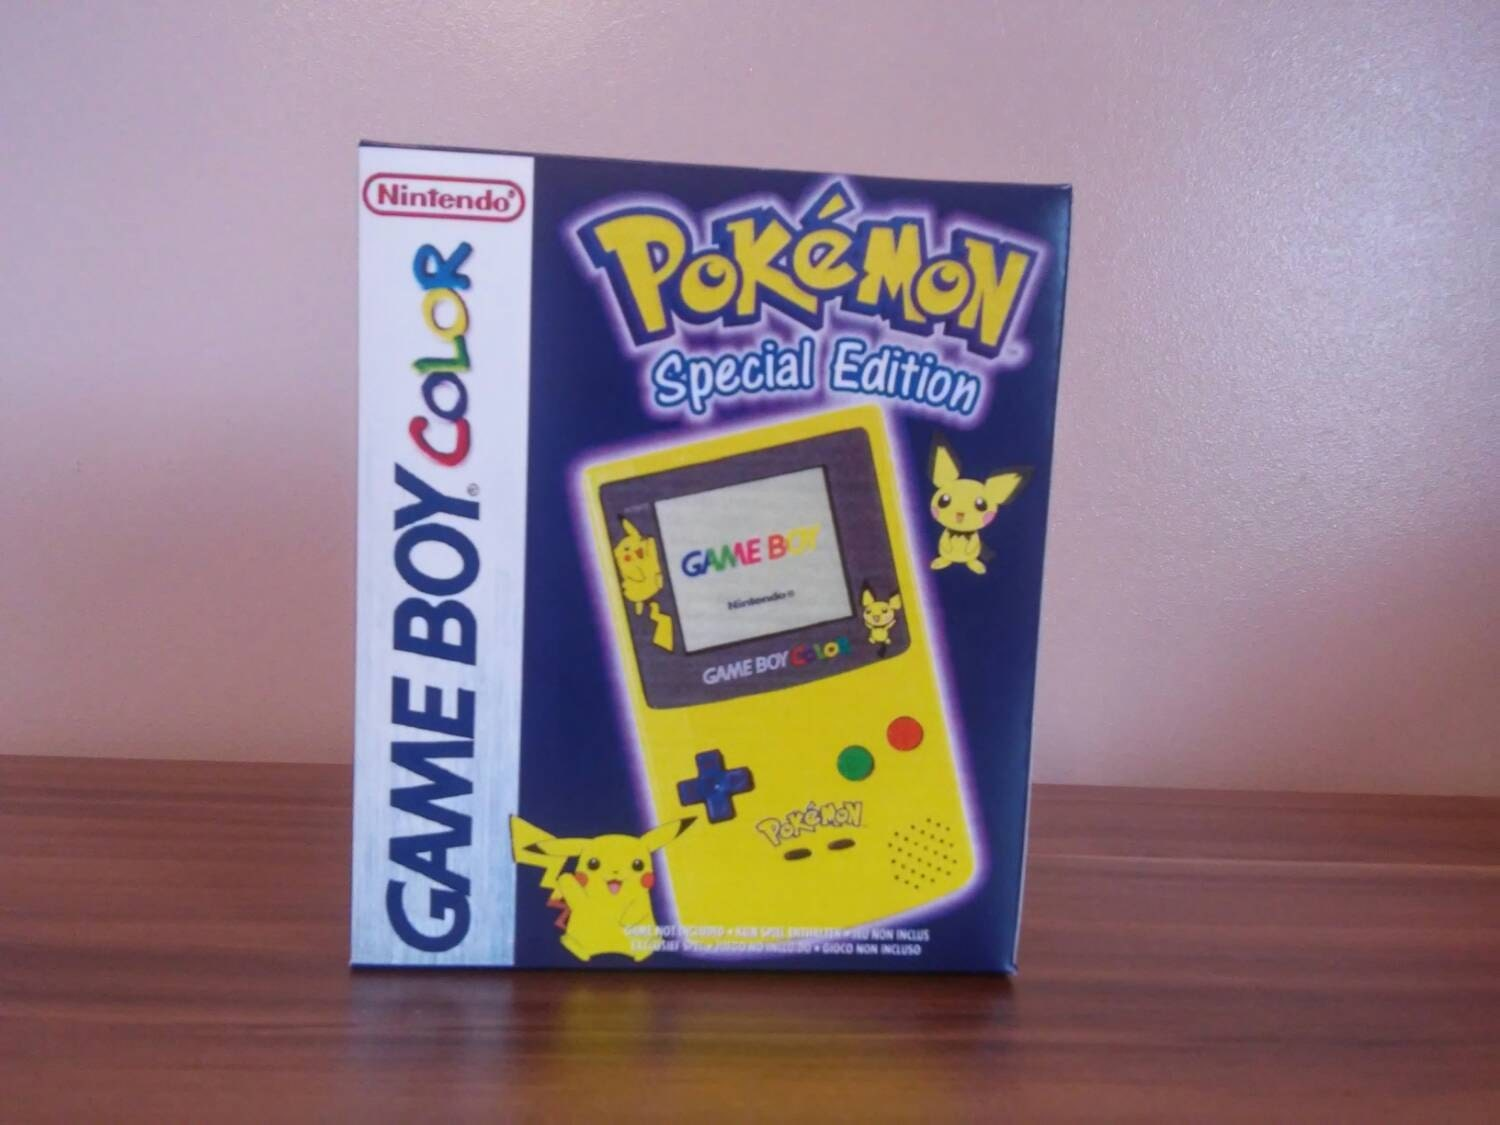 Pokemon games for gameboy color -  Zoom